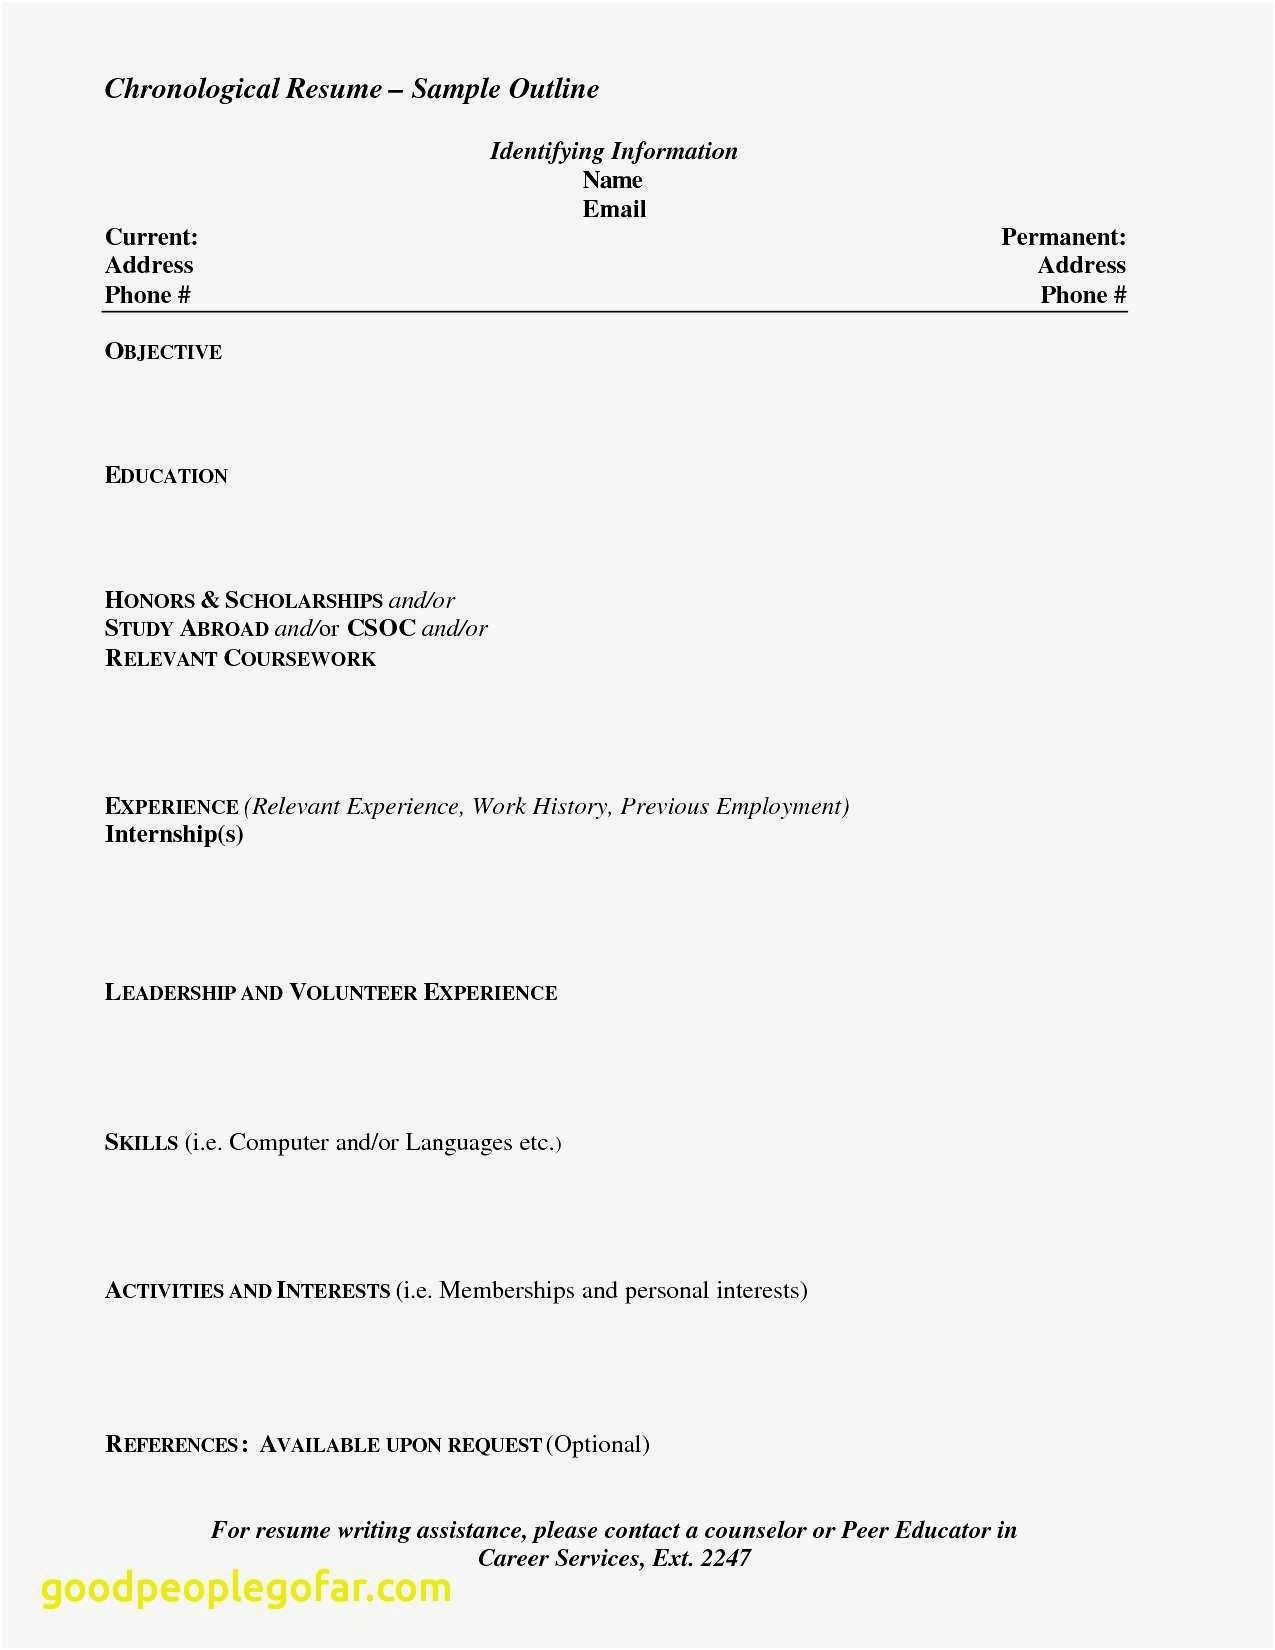 Best High School Resume - Good Objective Statement for Resume for Customer Service Free